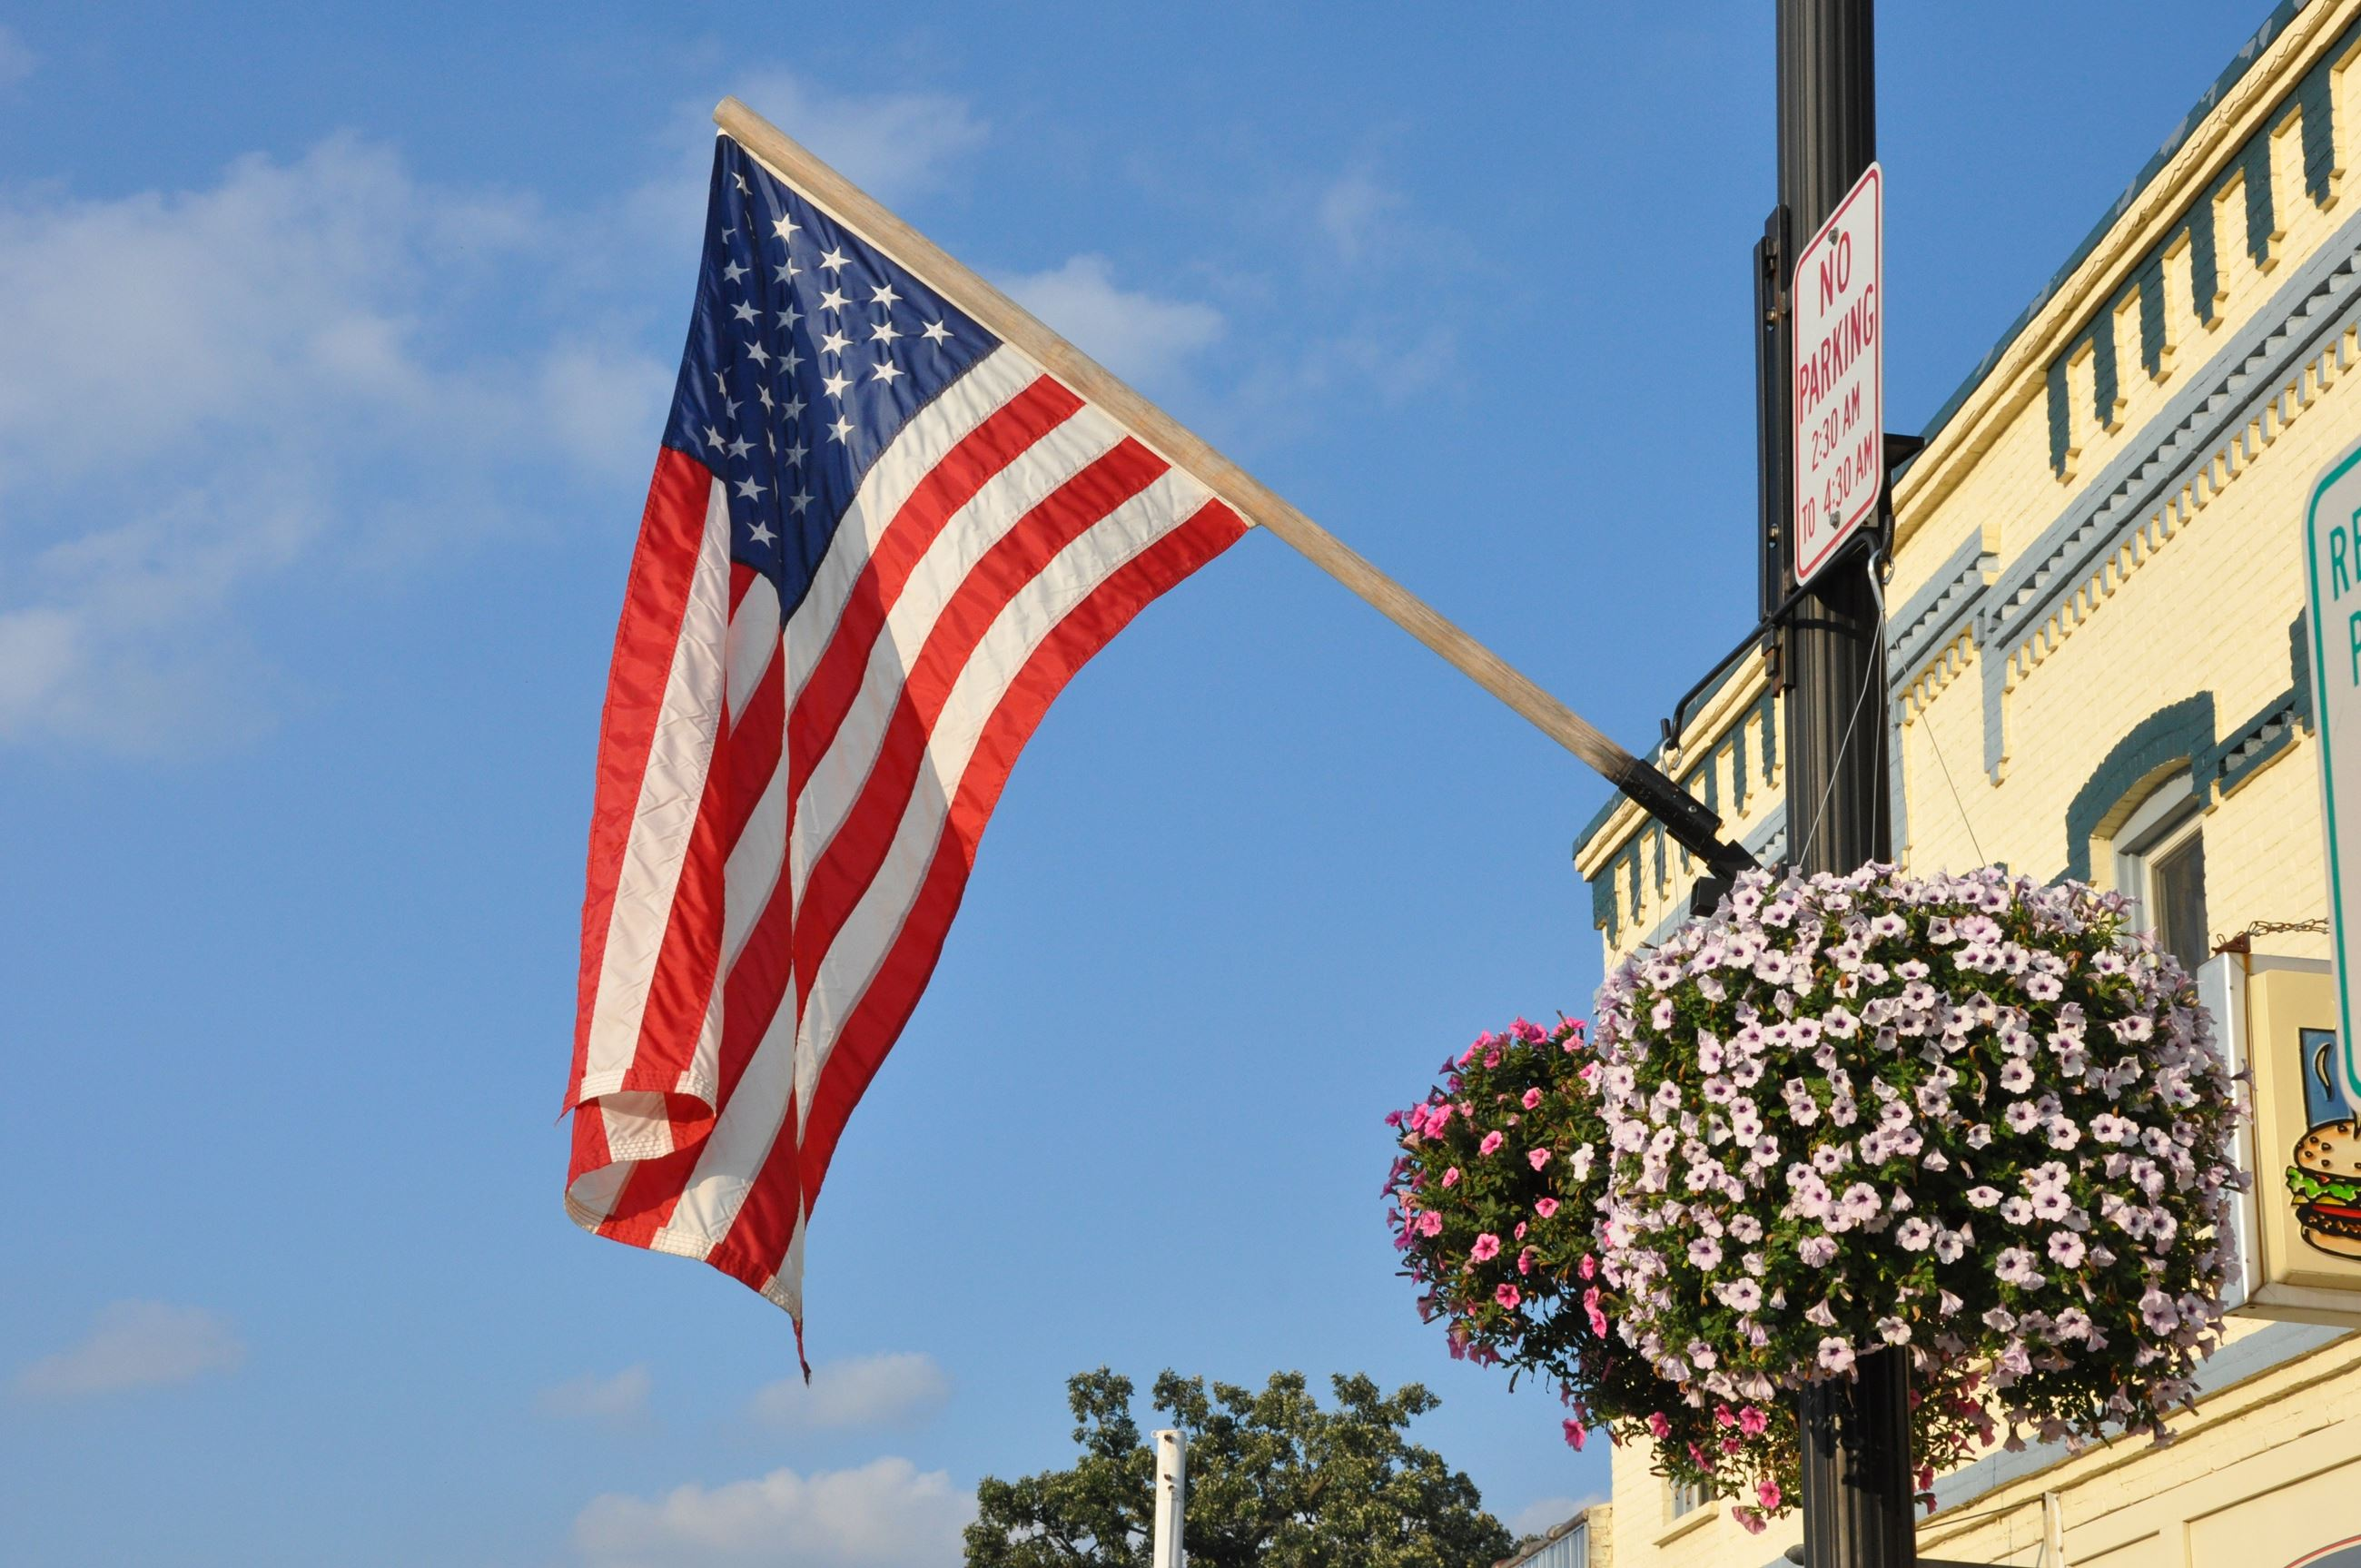 Flag Downtown - Photo Credit Lee Ann Hare